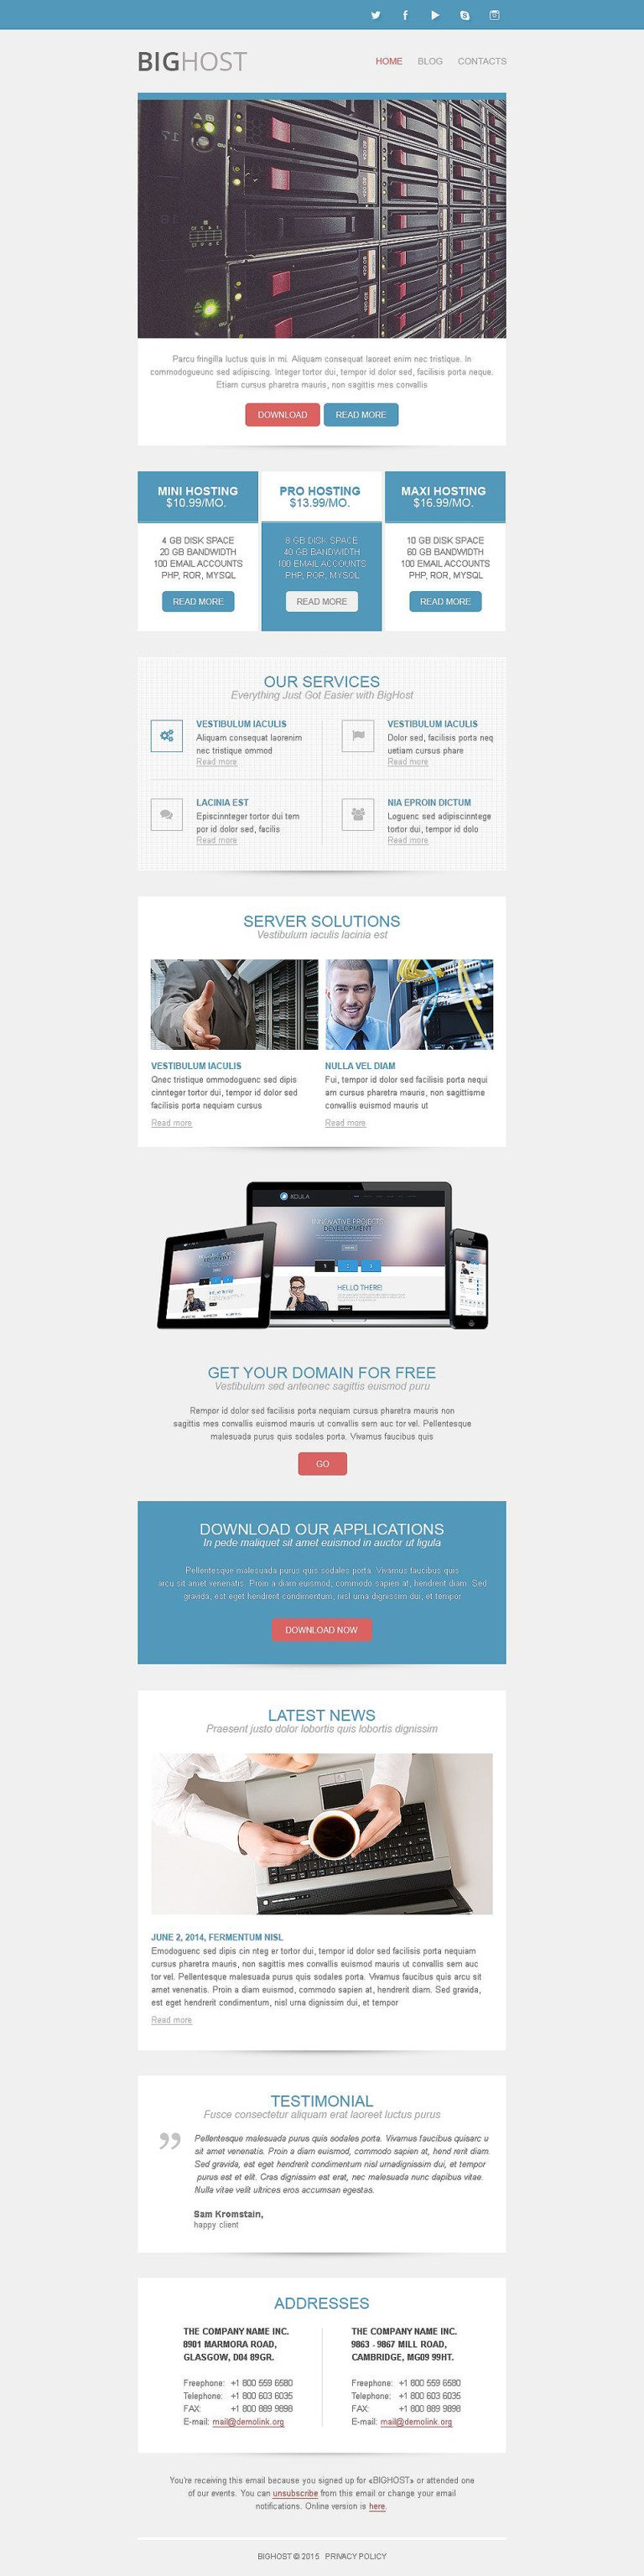 Hosting Responsive Newsletter Template New Screenshots BIG